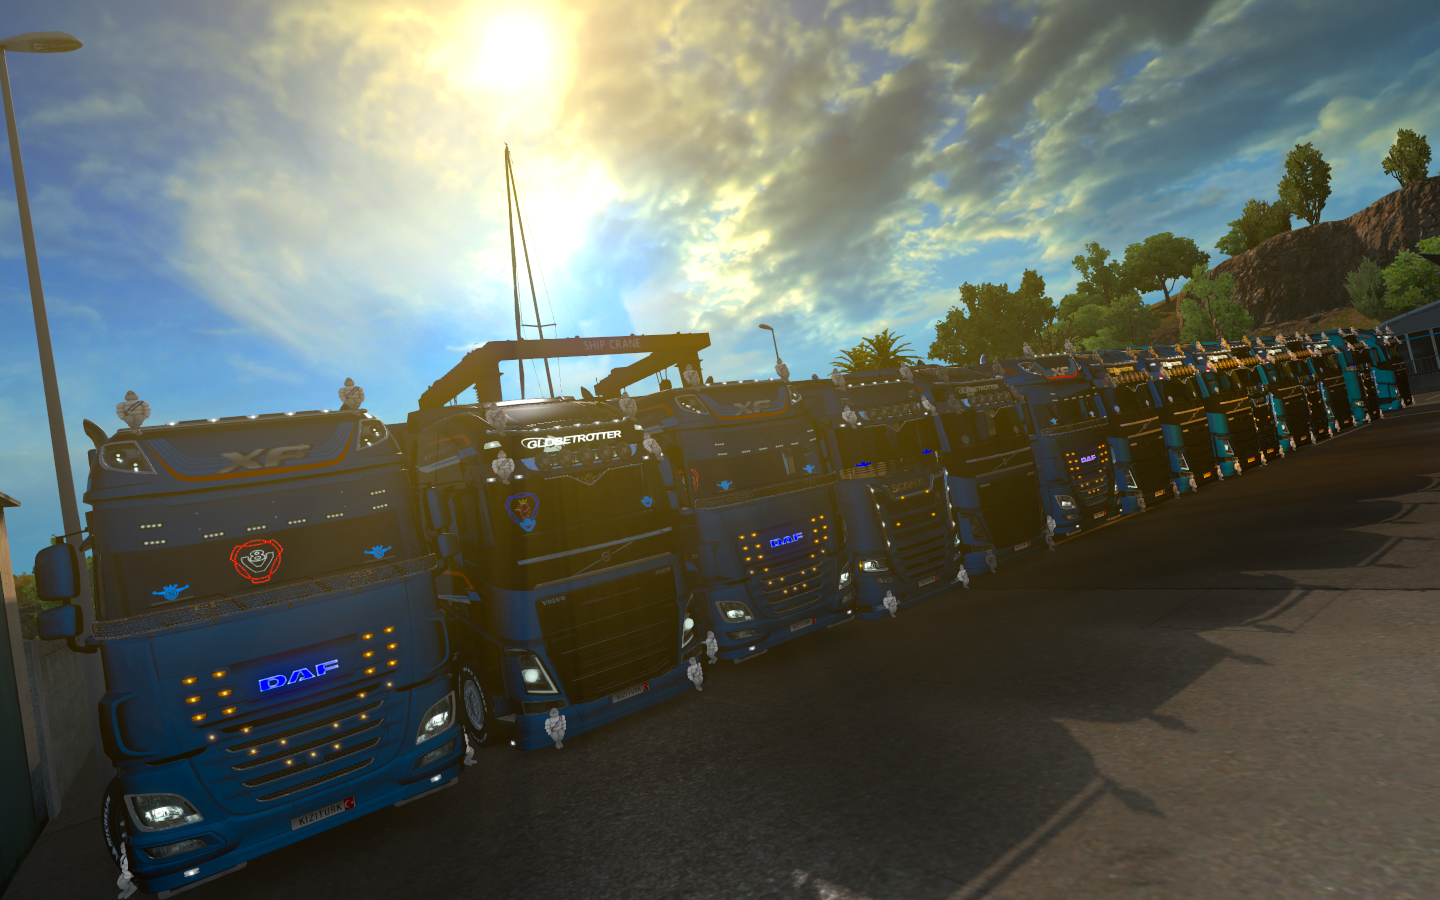 ets2_20190619_210326_00.png